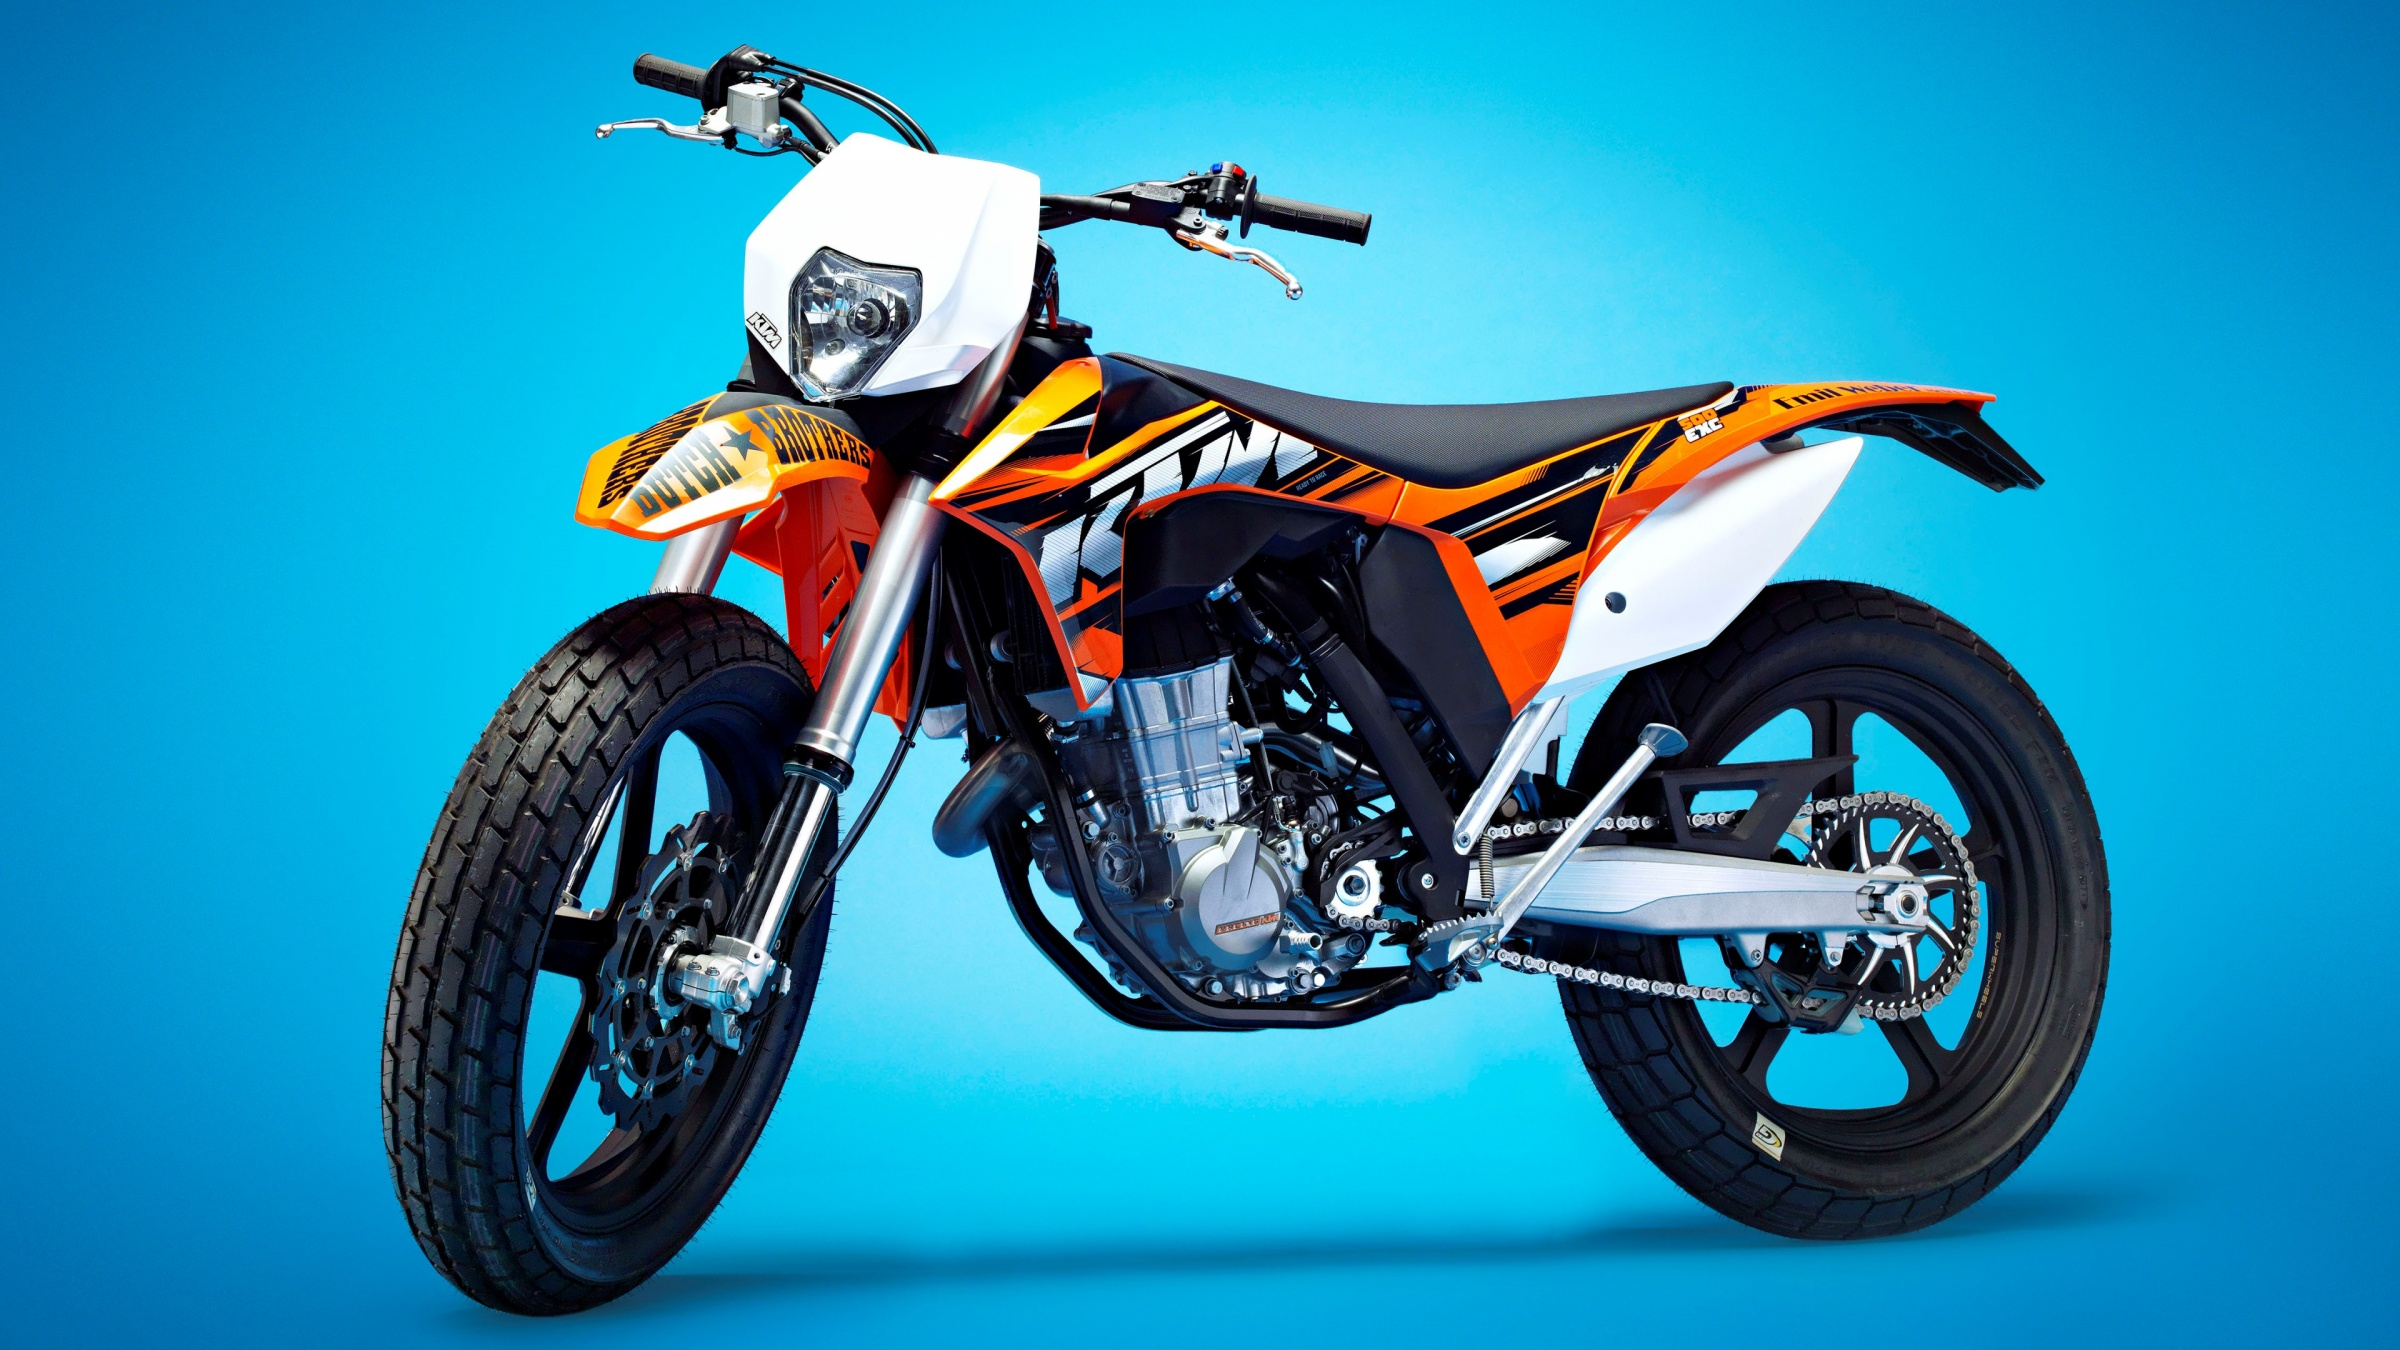 ktm 500 exc supermoto 2016 wallpapers 2400x1350 868850. Black Bedroom Furniture Sets. Home Design Ideas